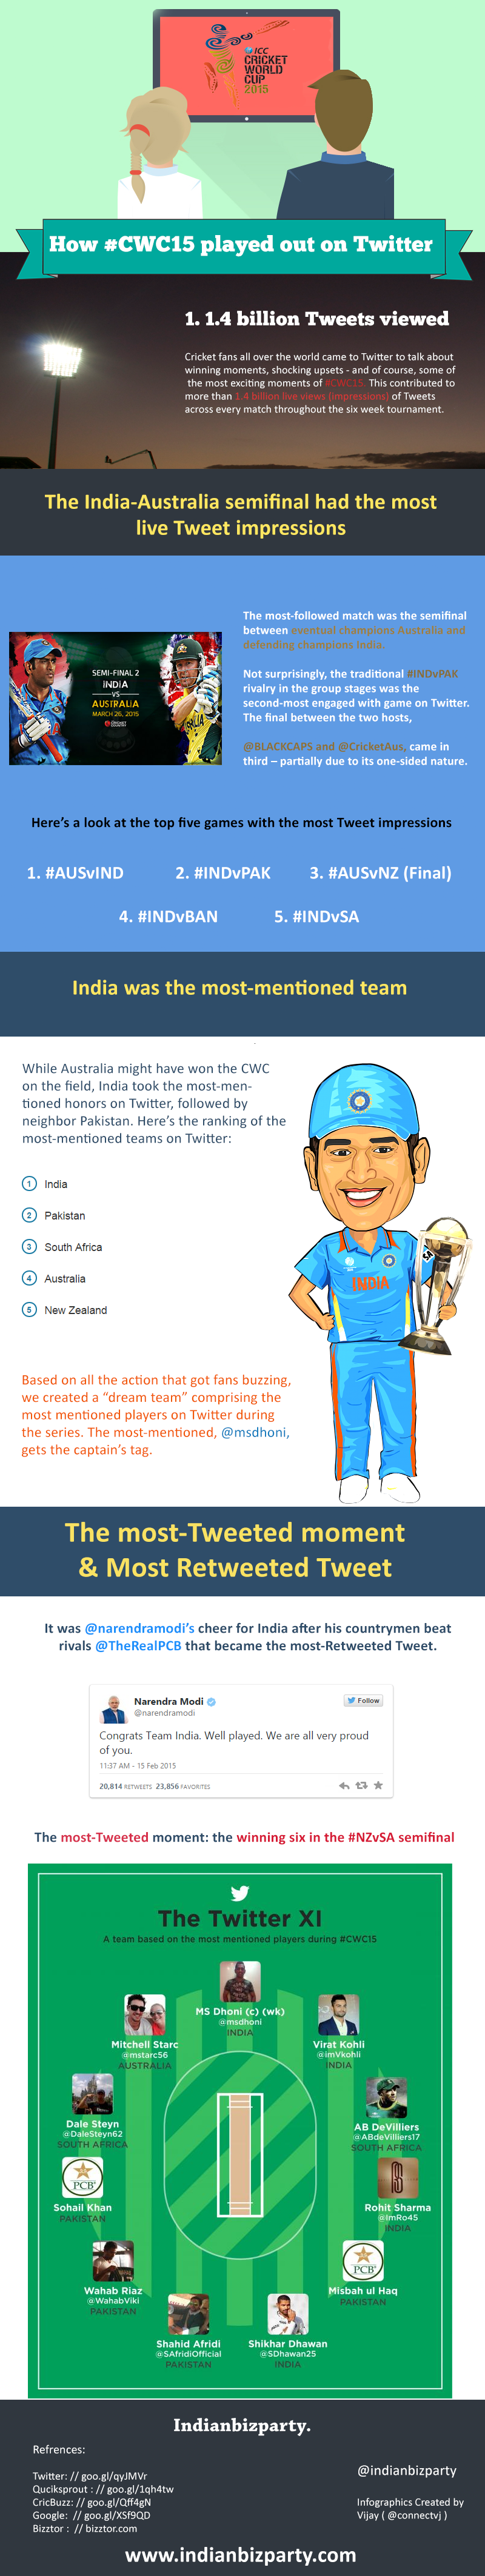 How #CWC15 Played Out on Twitter